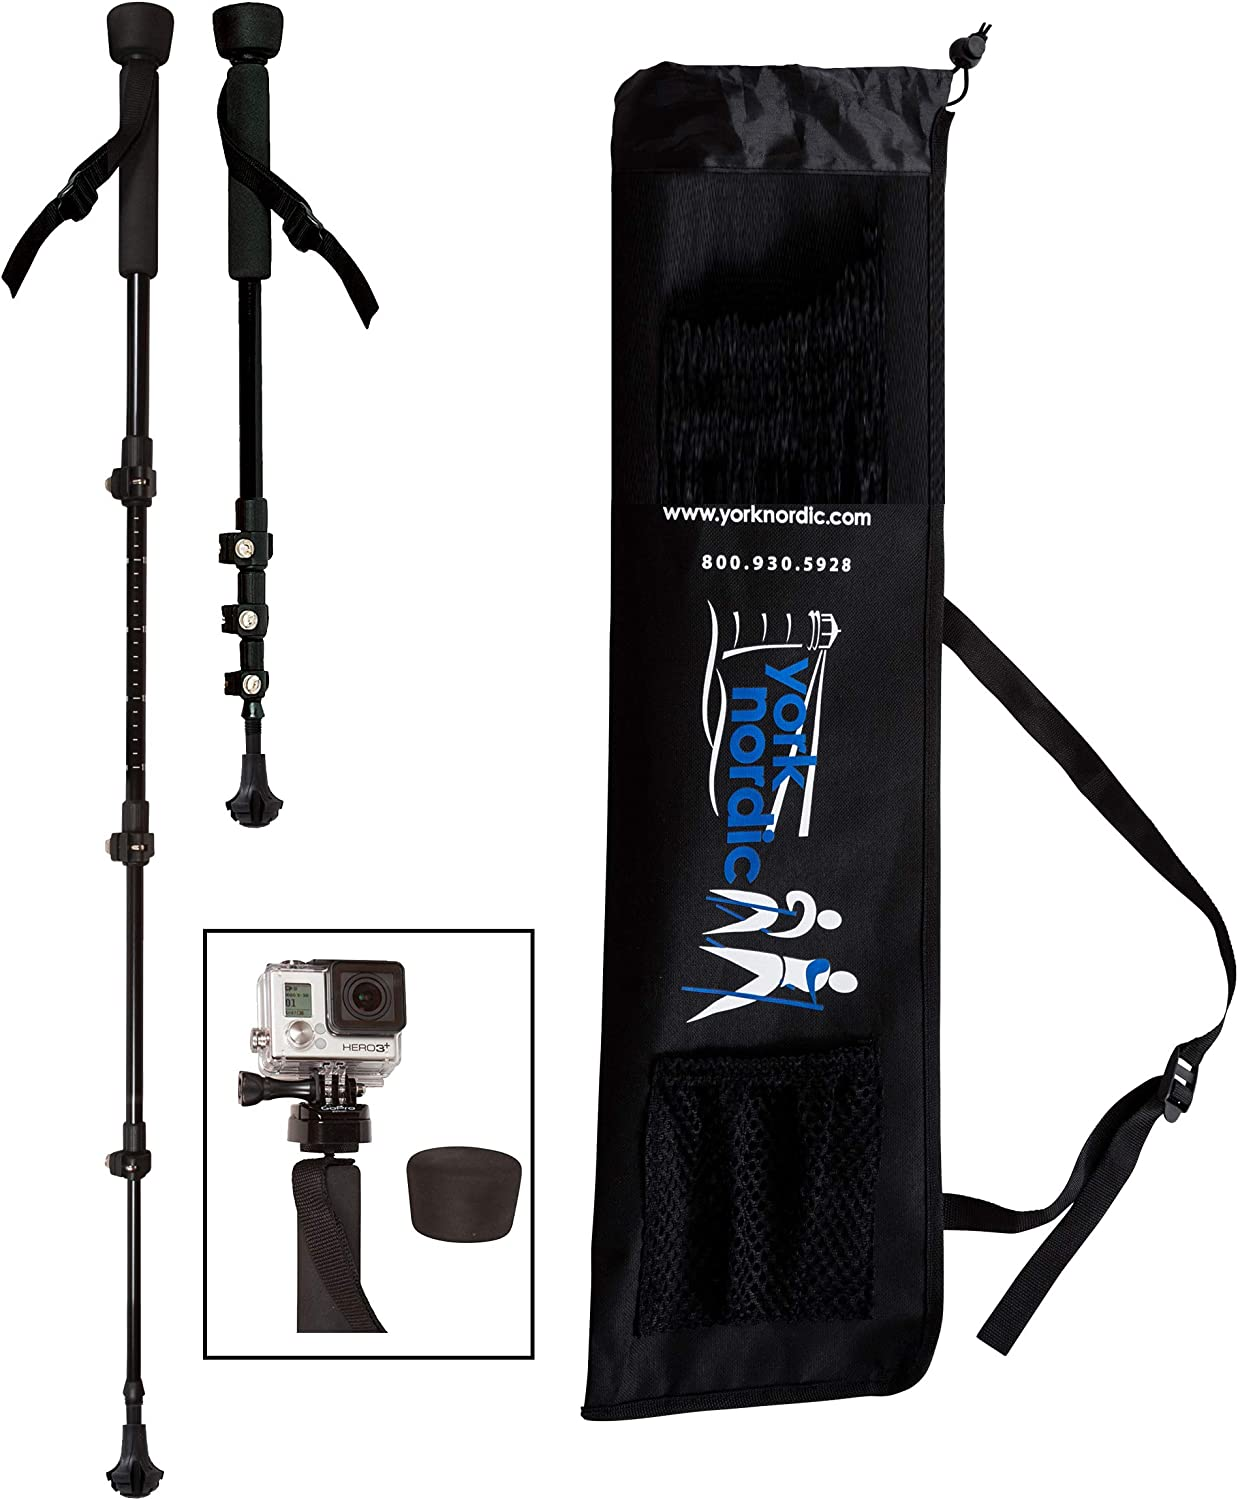 York Nordic Collapsible Trekking Hiking Poles with Digital Camera Mount, Flip Locks, and Rubber Feet, Pair